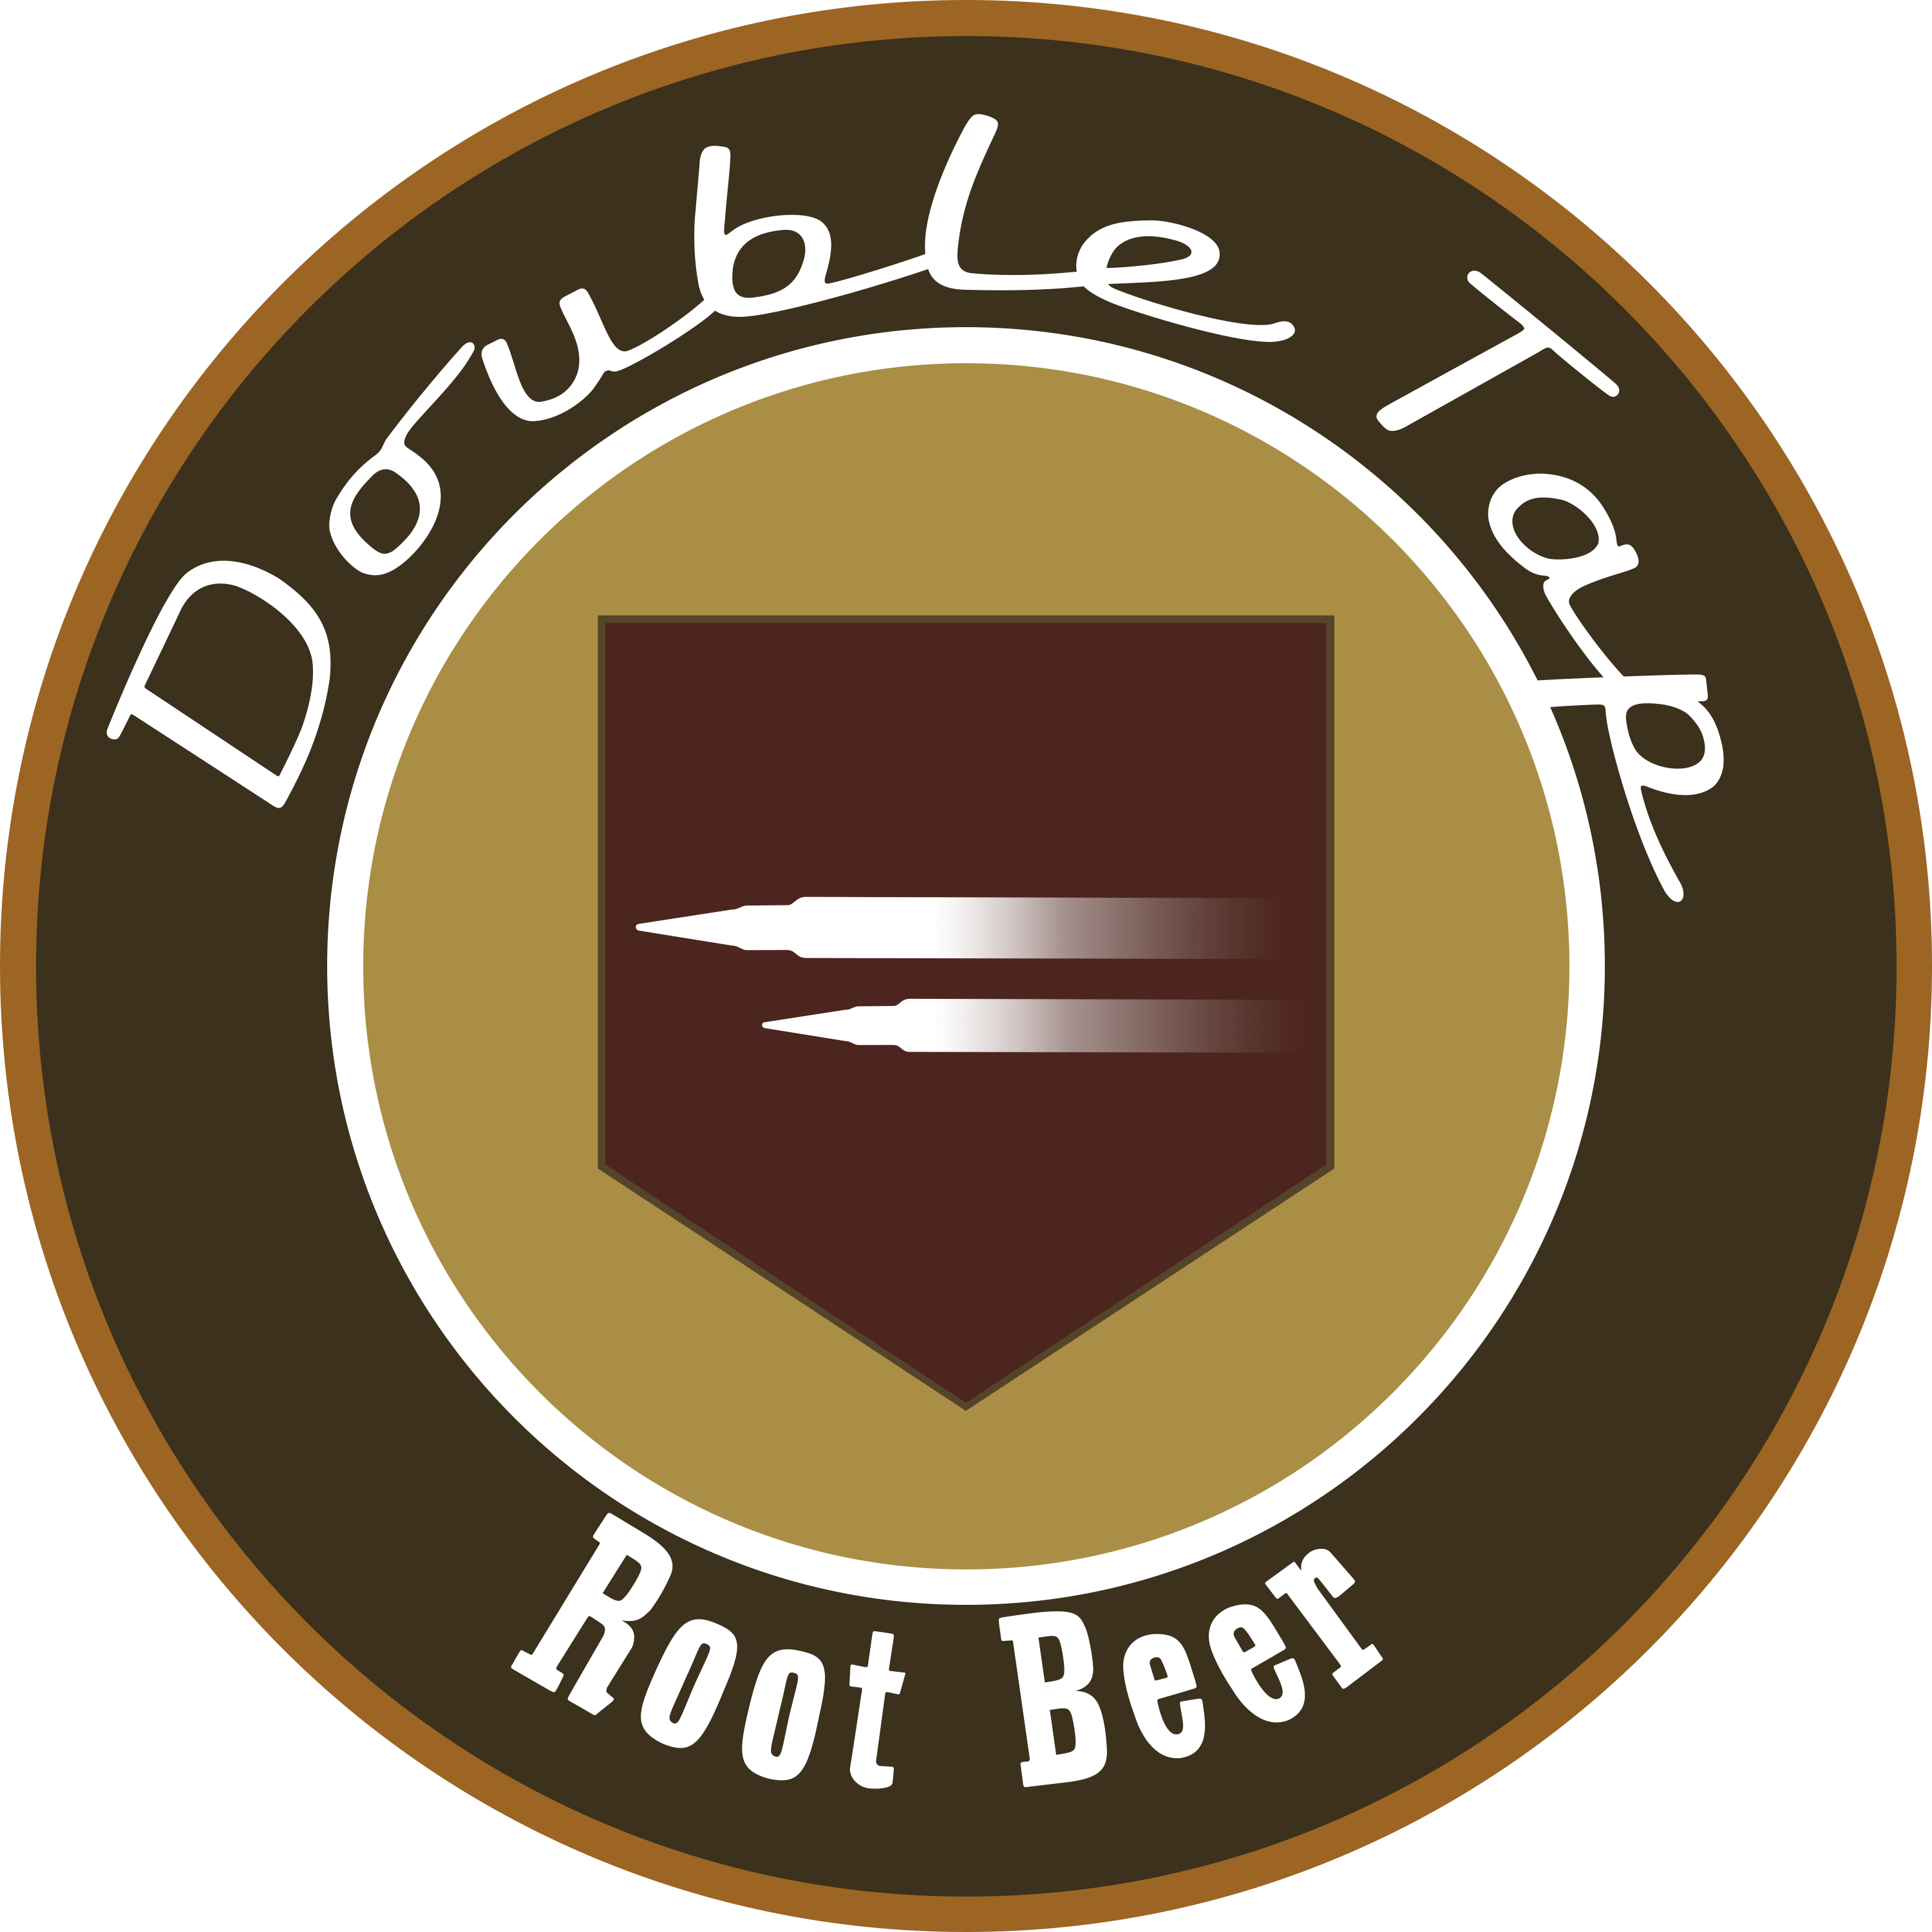 Double Tap Root Beer Logo From Treyarch Zombies 3000x3000 Call Of Duty Zombies Call Of Duty Call Of Duty Black